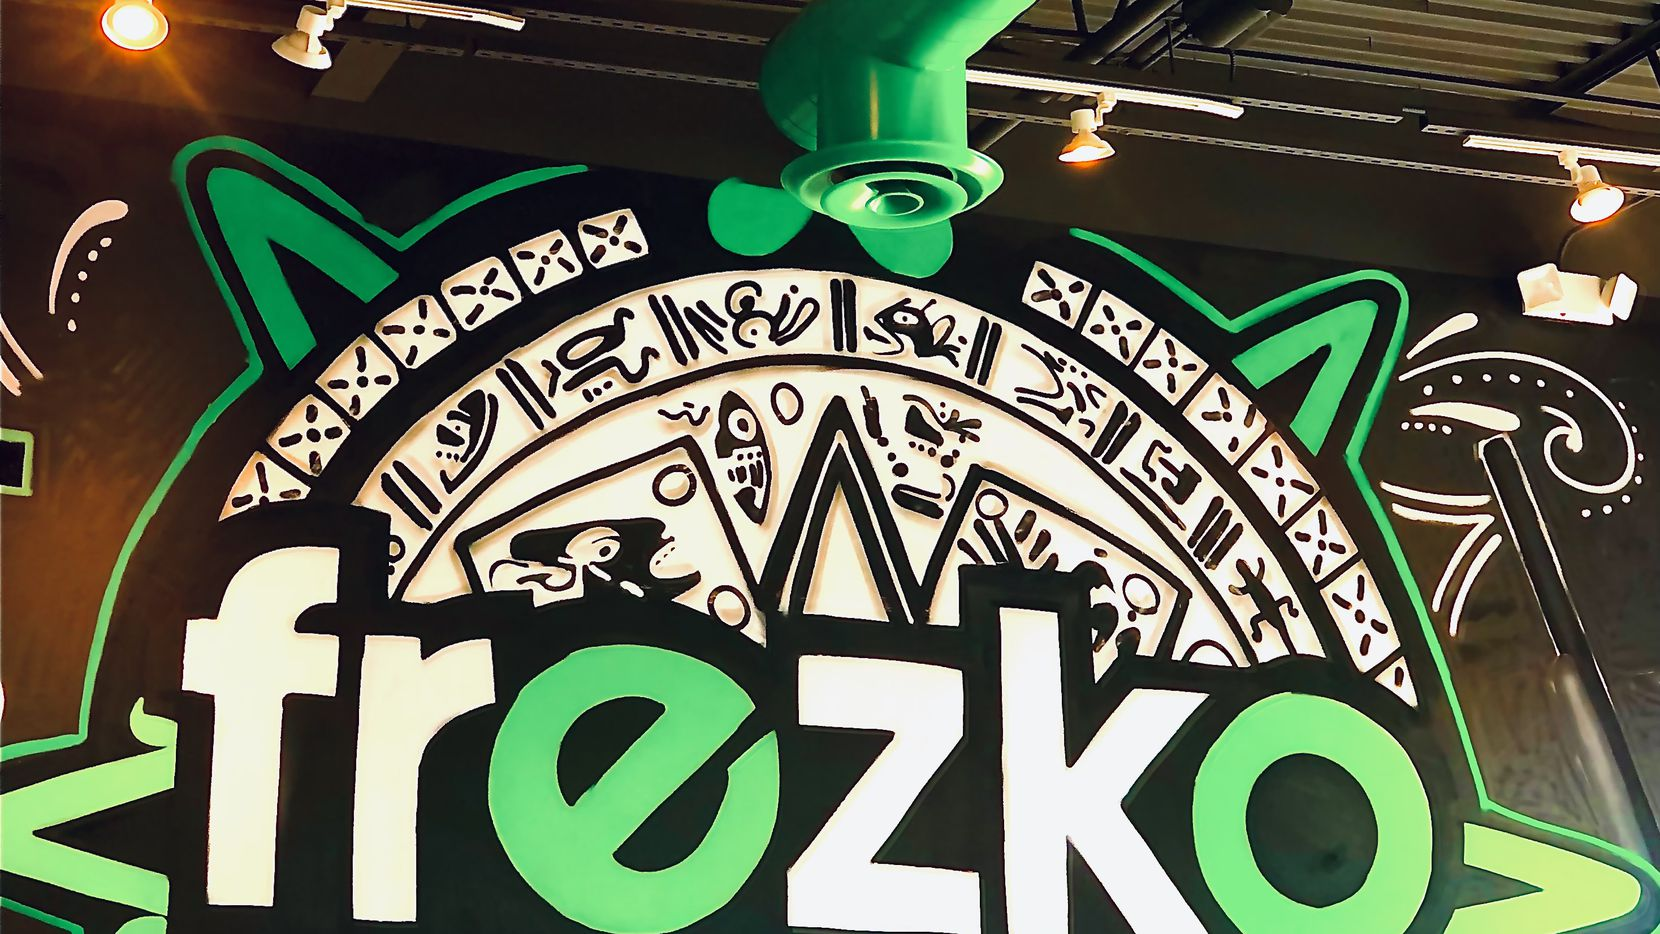 Fort Worth artist Juan Velazquez has painted several murals inside the new Frezko Taco Spot in The Colony.